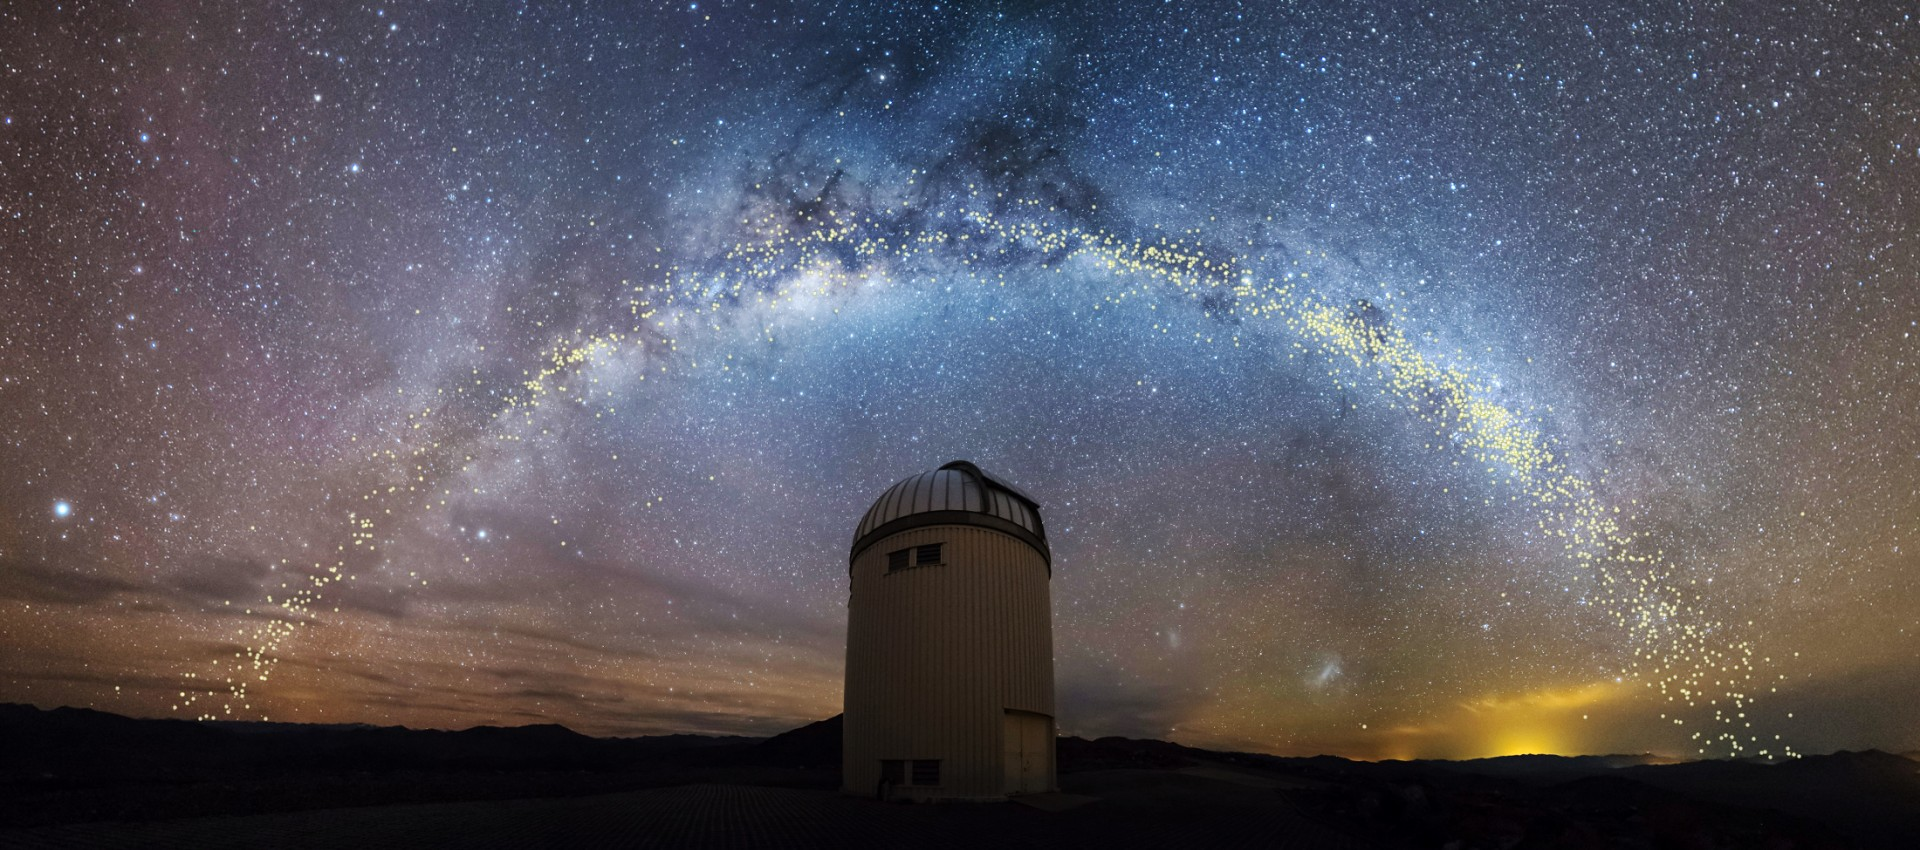 The Warsaw telescope and galactic Cepheids. Researchers used the telescope to build the most comprehensive 3D map ever of the Milky Way galaxy.